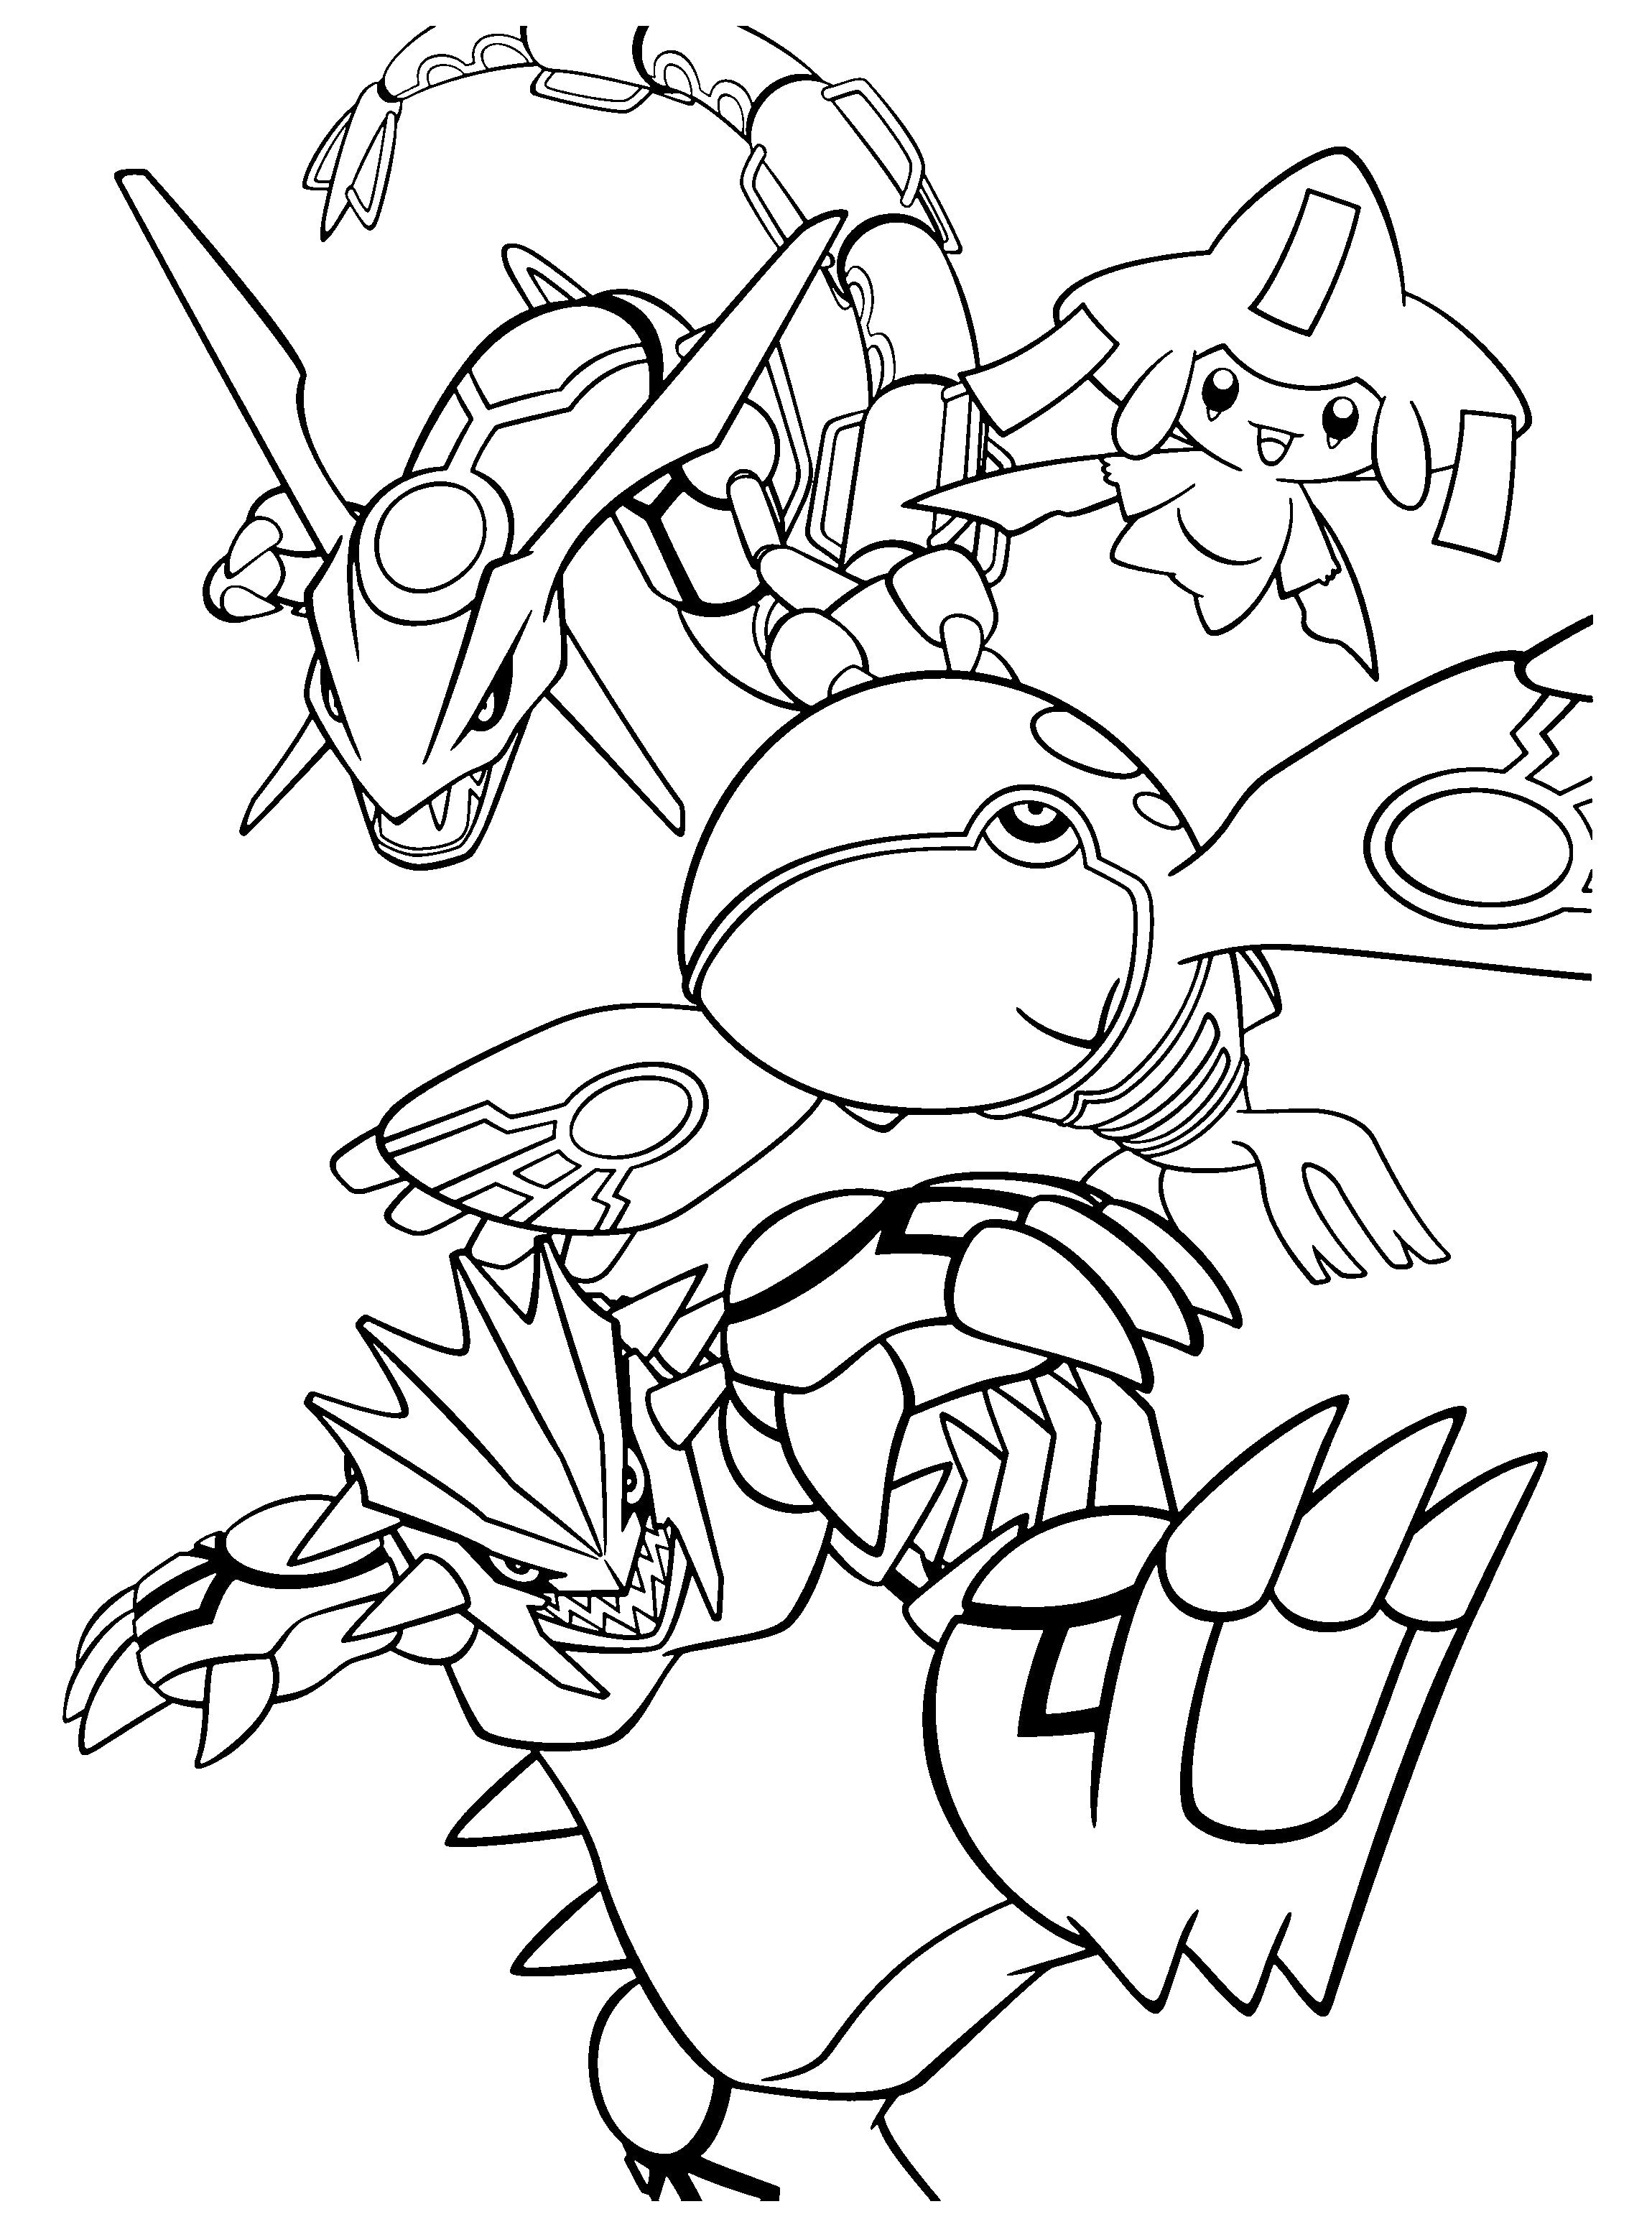 pictures of pokemon coloring pages pokemon coloring pages join your favorite pokemon on an of coloring pictures pages pokemon